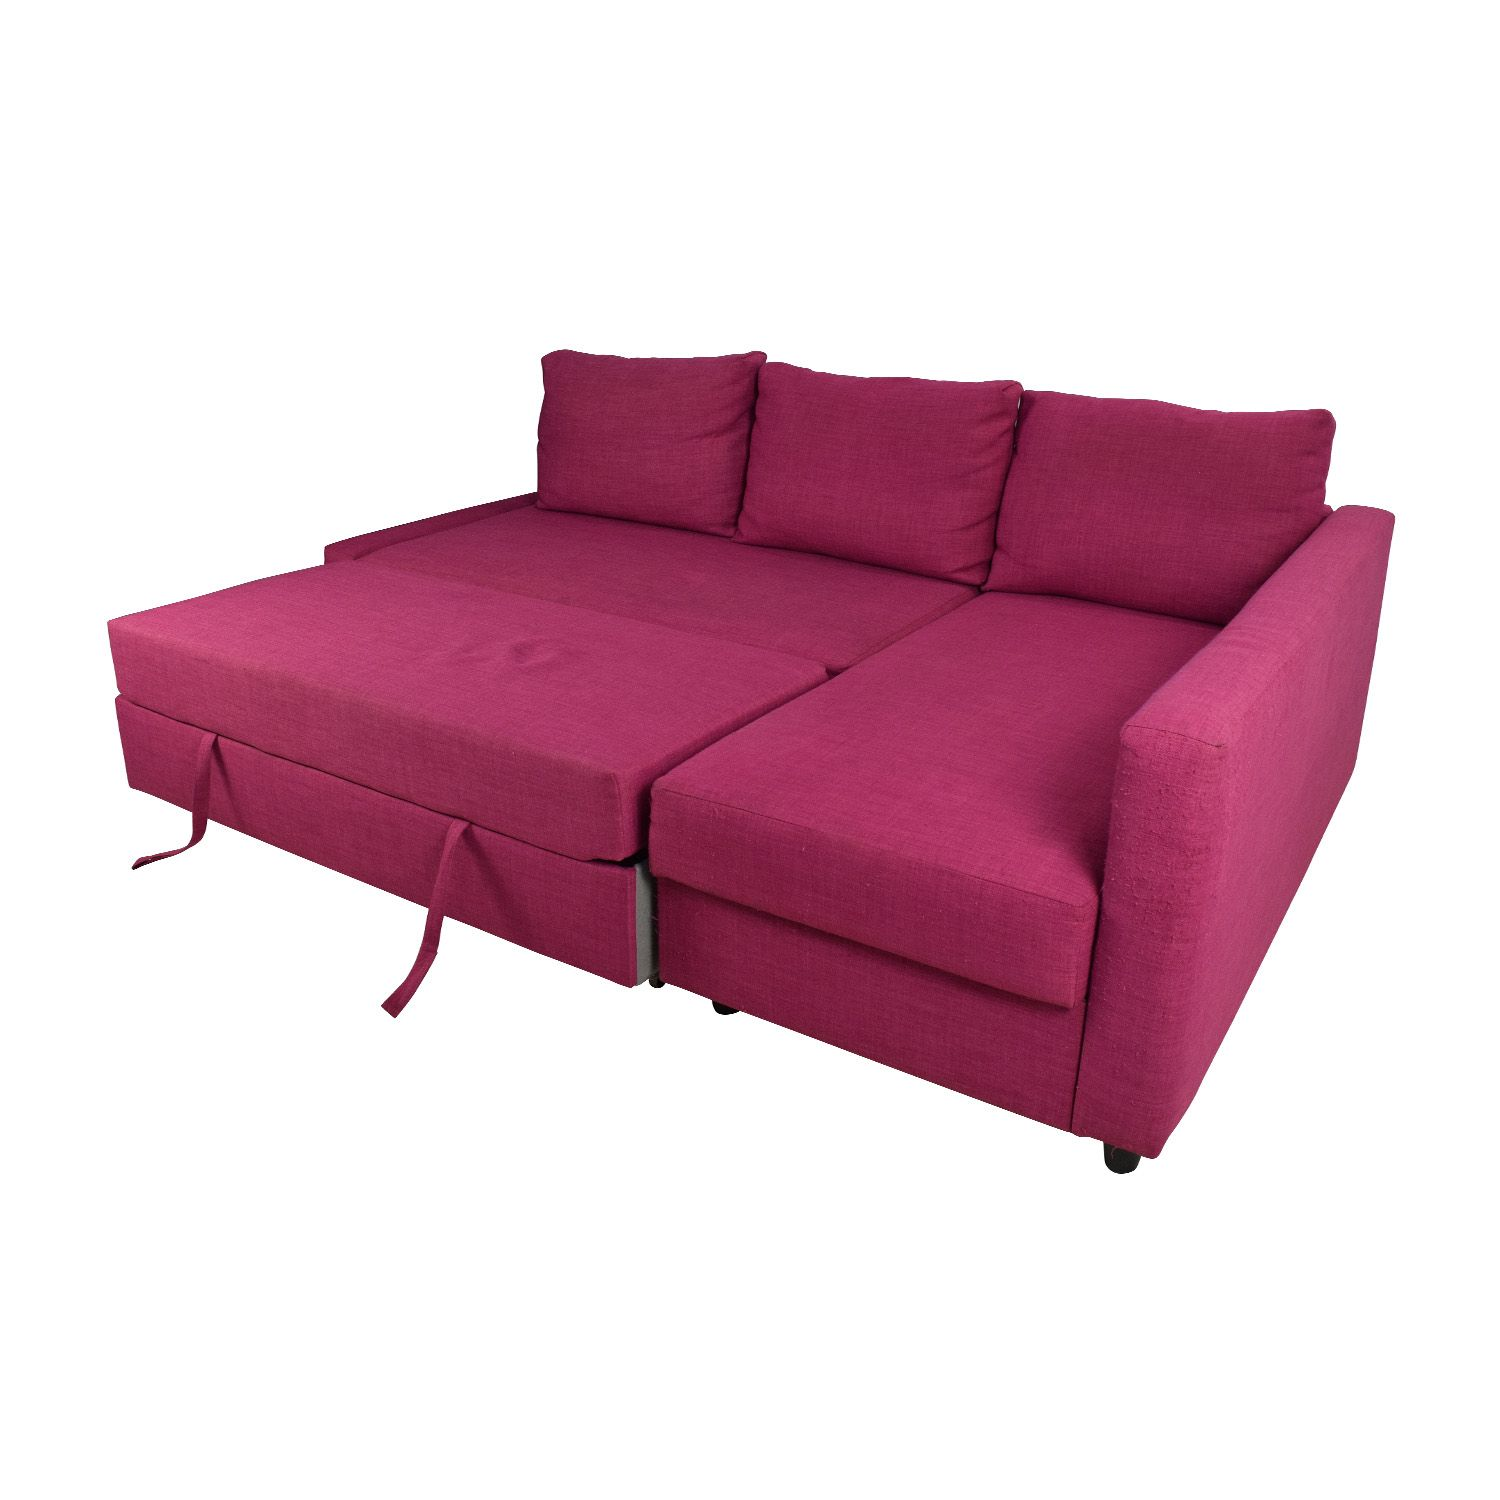 Pink Sofa Sleeper Best Collections Of Sofas And Couches Sofacouchs Com Sleeper Sofa Couch Ikea Couch Pink Sofa Living Room